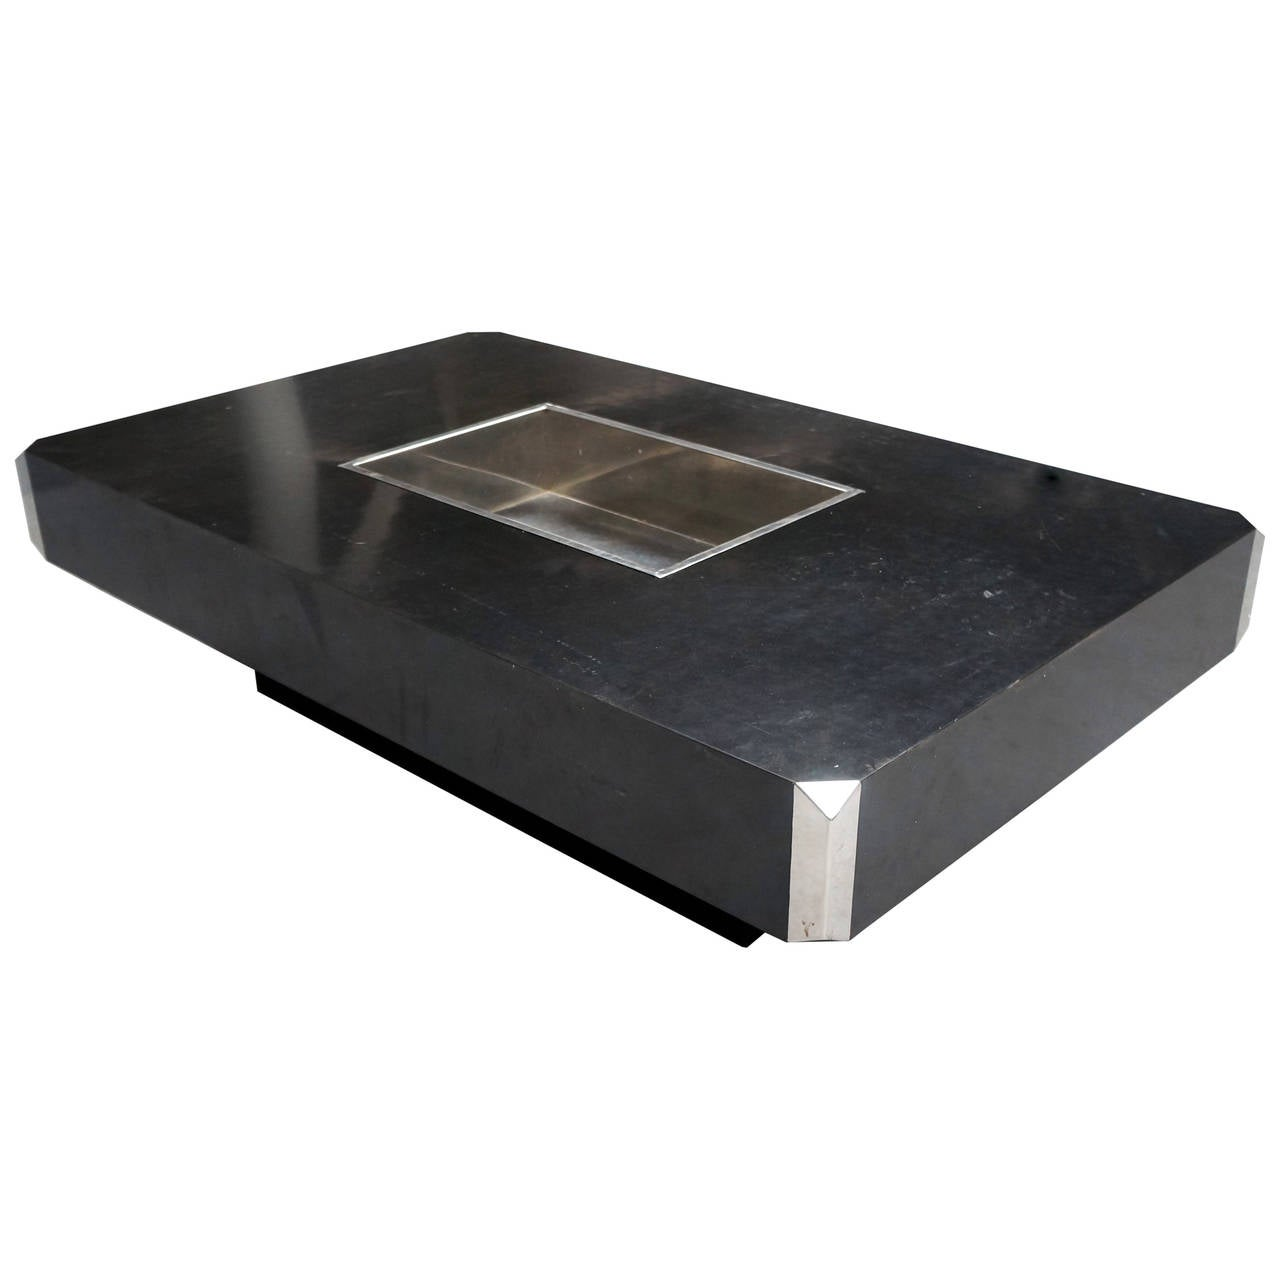 Willy rizzo coffee table for sale at 1stdibs for Table willy rizzo